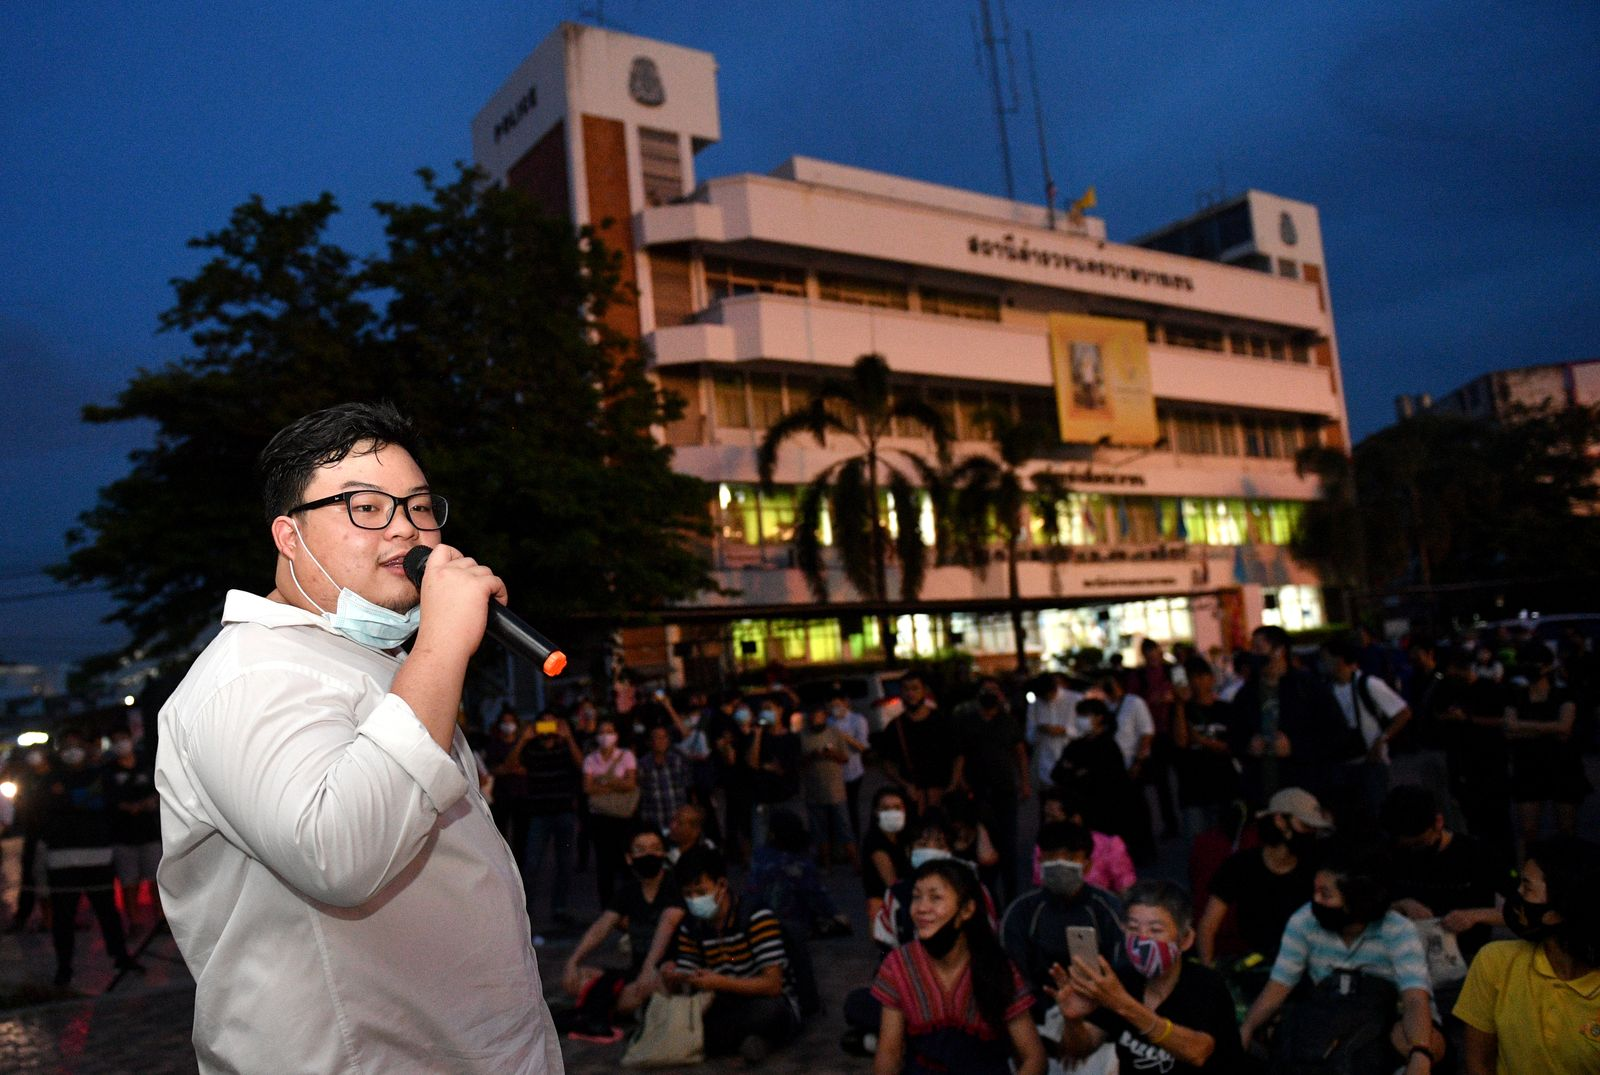 Parit Chiwarak speaks to supporters outside a police station where fellow protester Anon Nampa was arrested in Bangkok